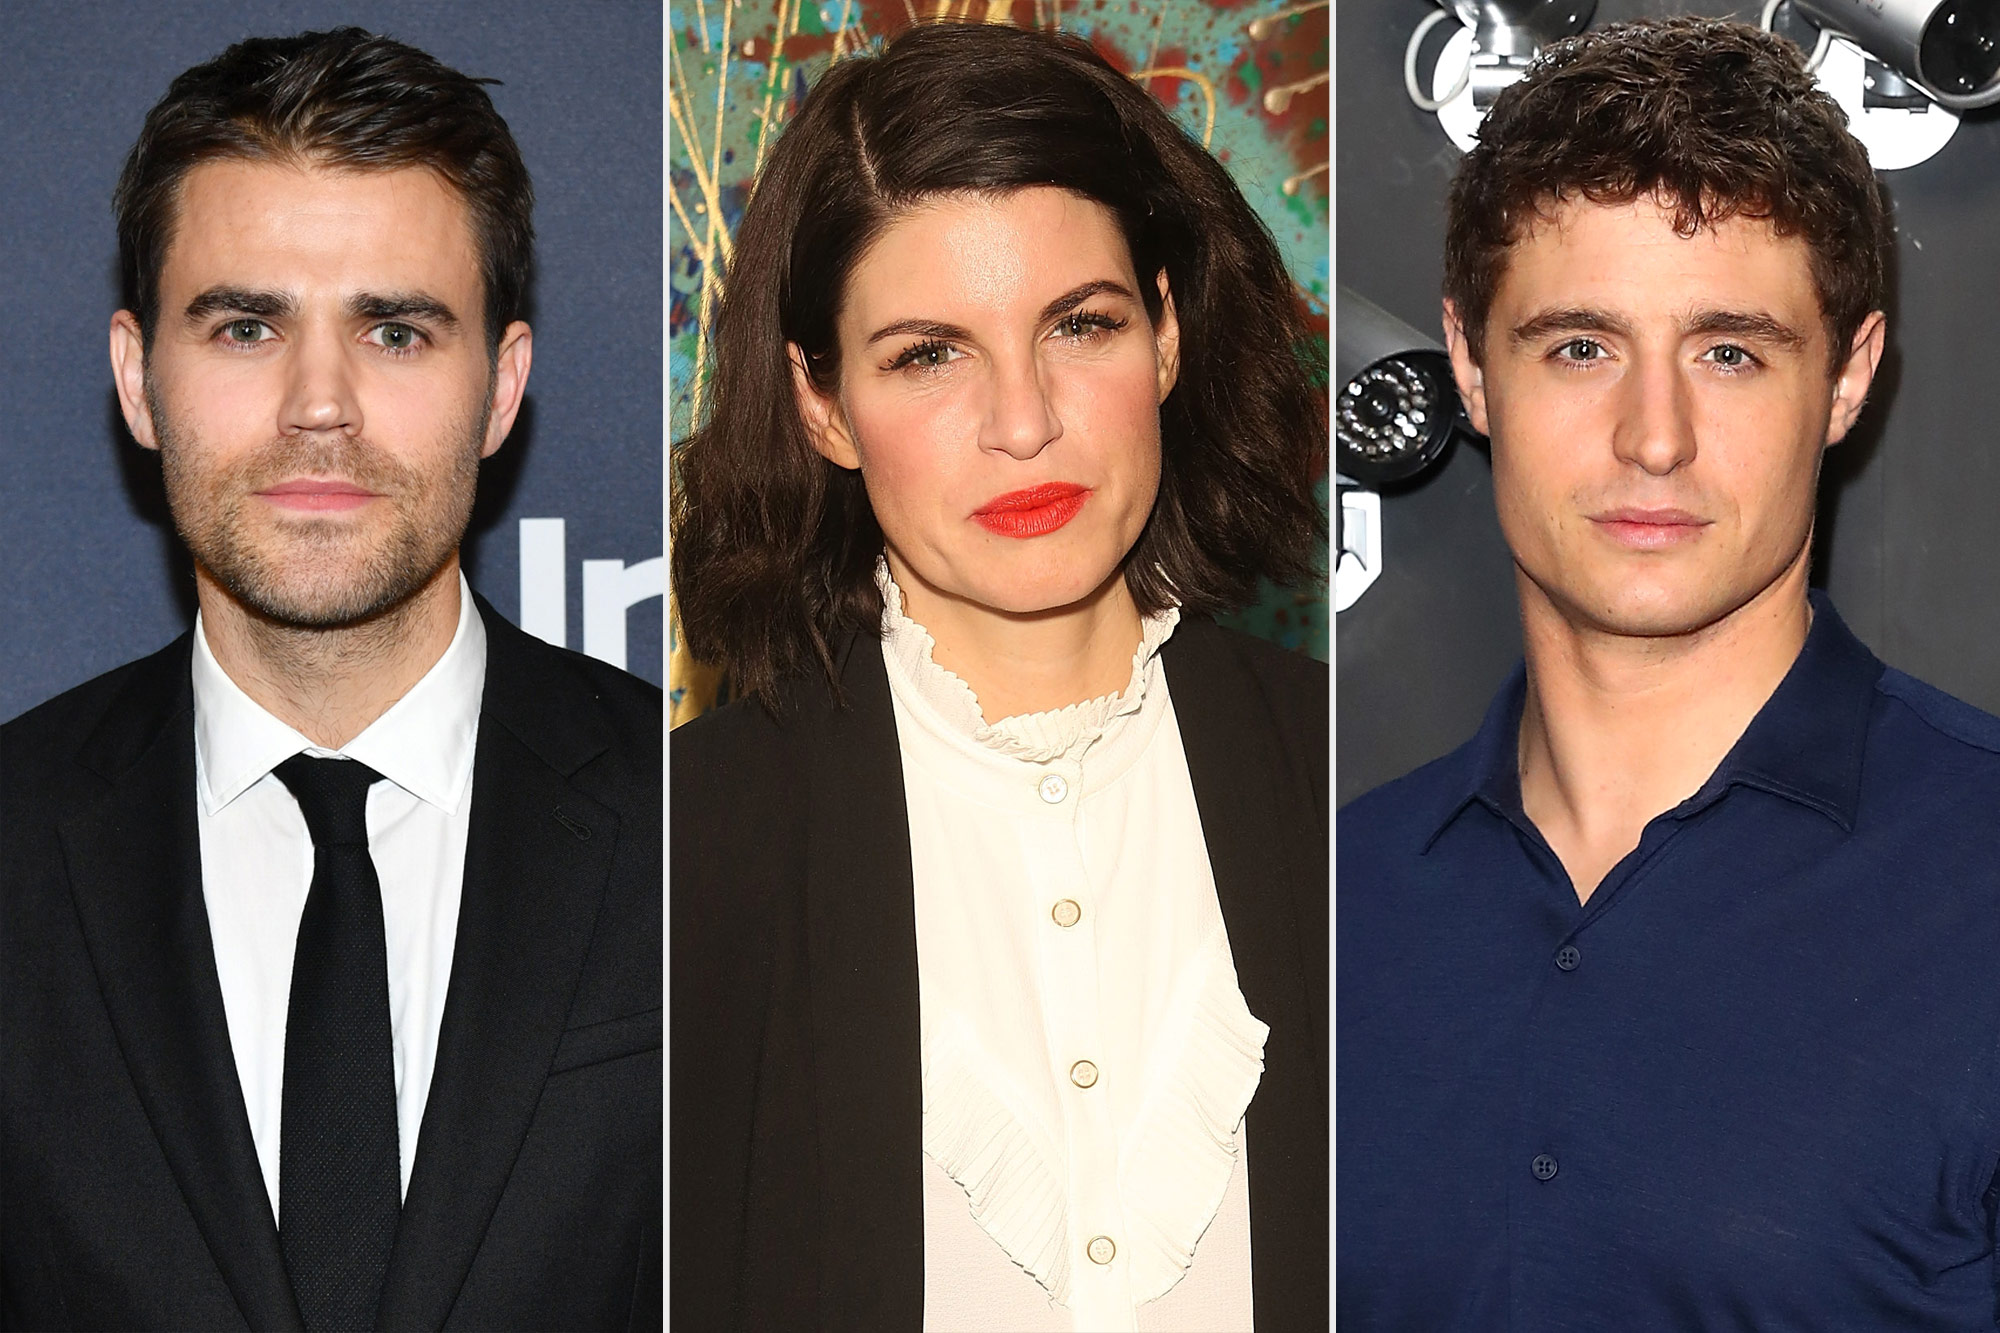 Paul Wesley, JEMIMA ROOPER, and MAX IRONS